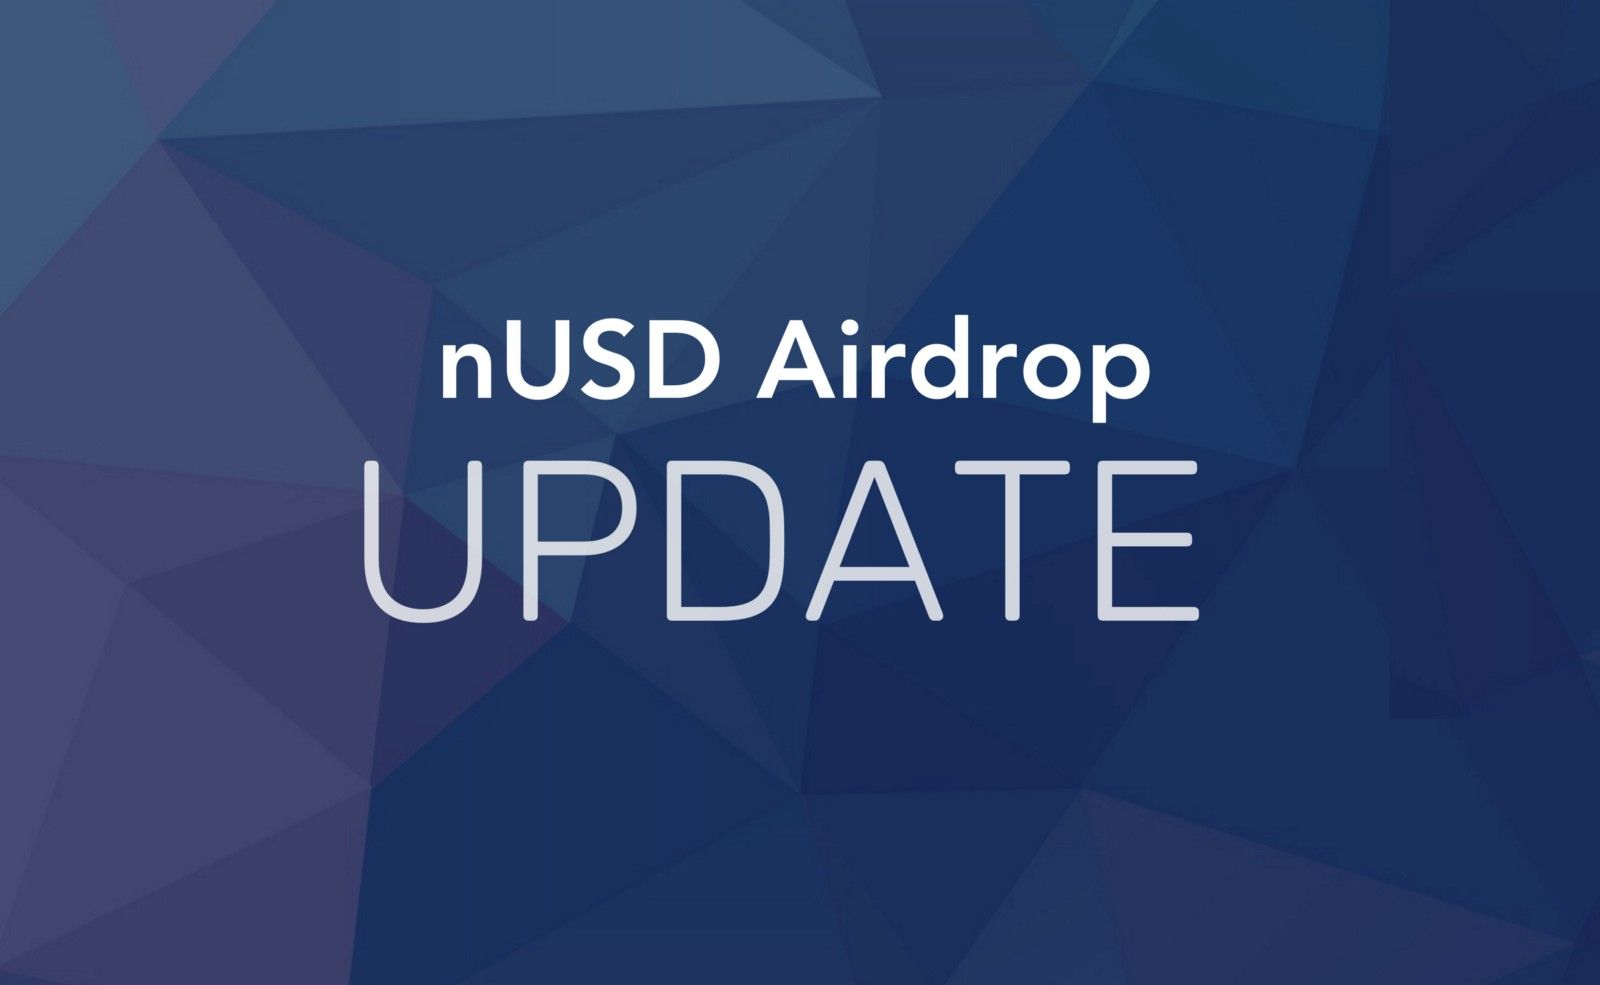 Update: nUSD Airdrop Distribution